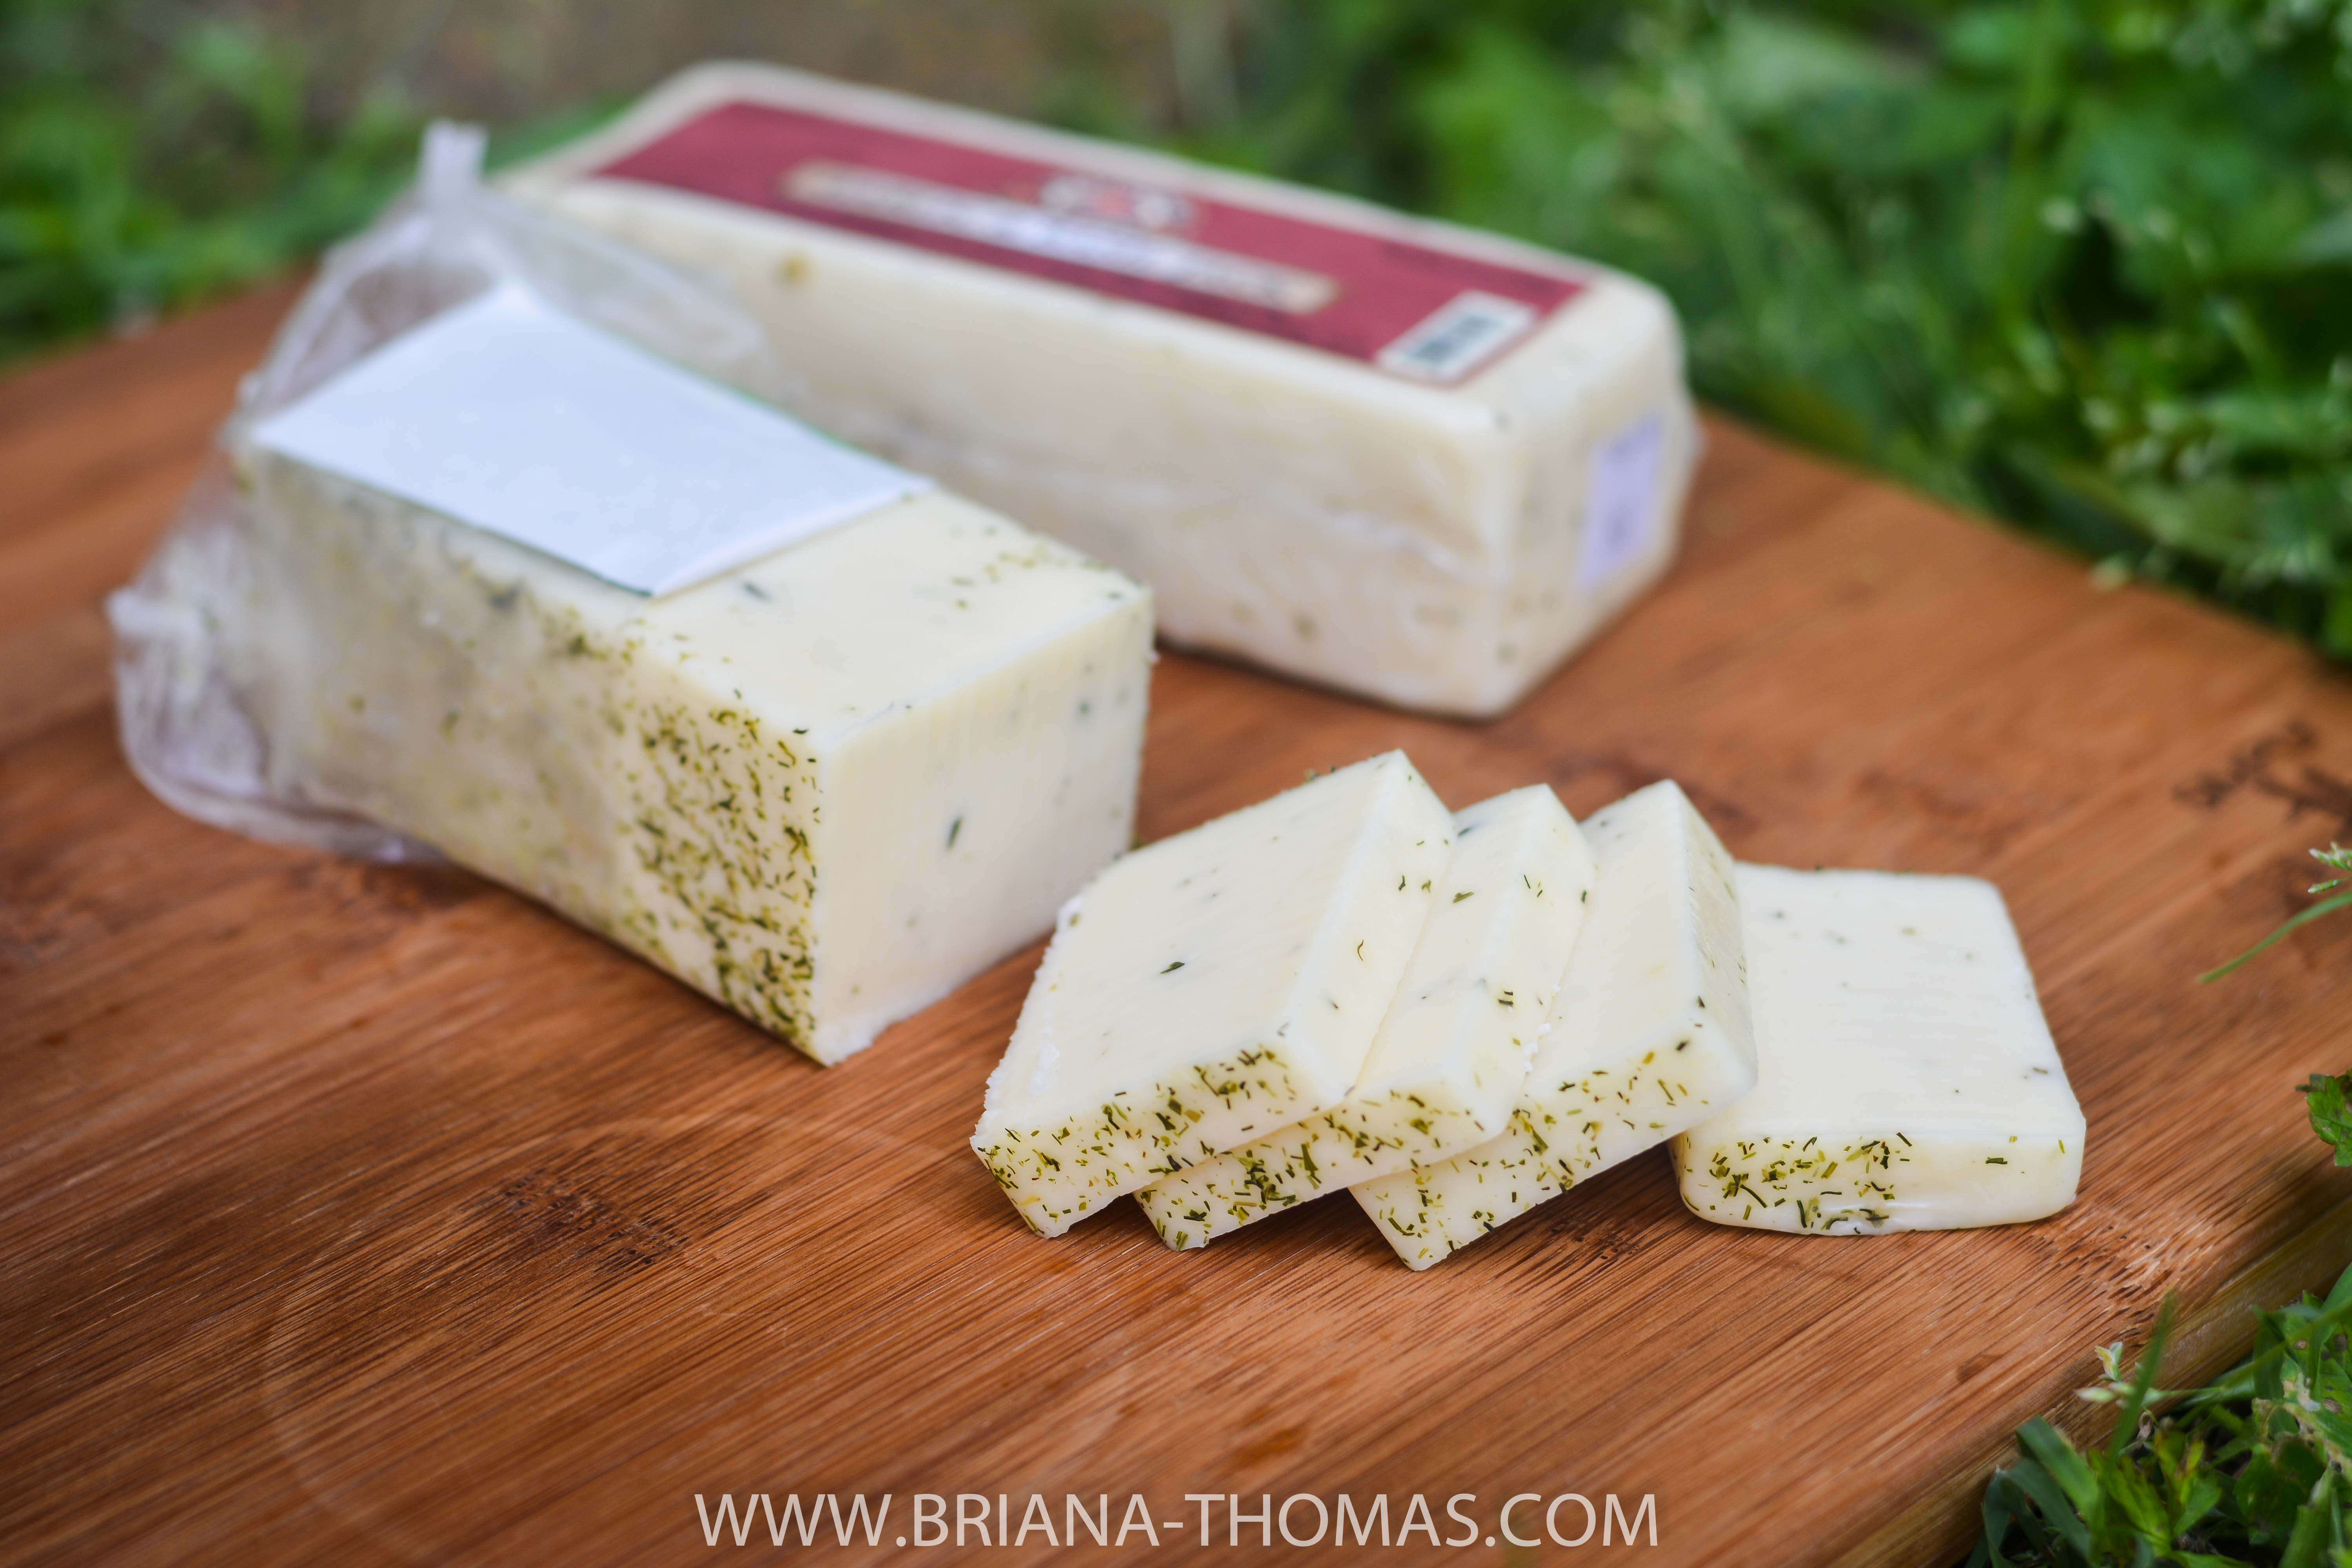 Chives & Dill Jack cheese from September Farm in Honey Brook, PA